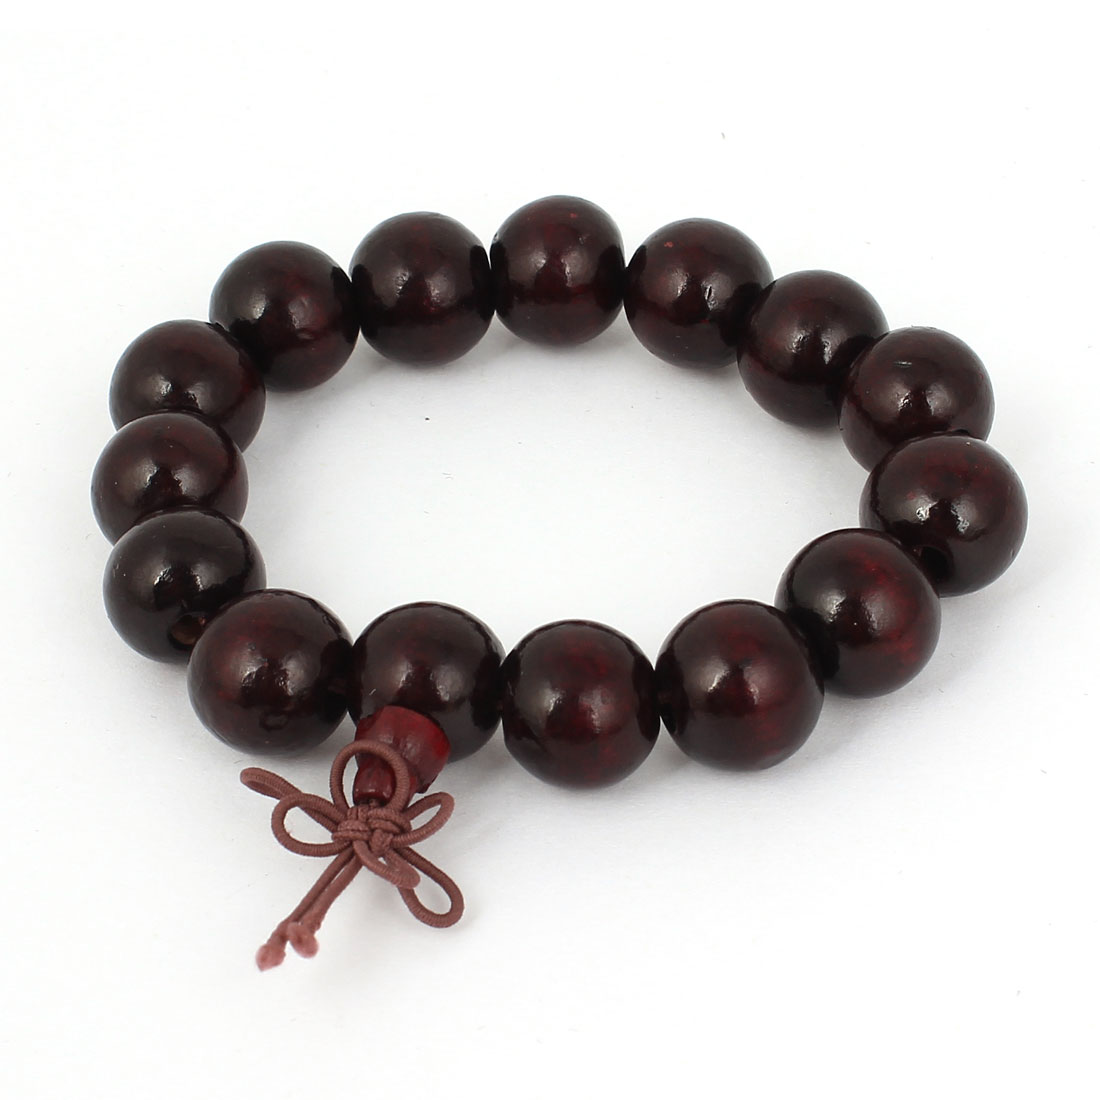 Strecthy Wrist Band Buddha Beads Chinese Character Bangle Bracelet Dark Brown